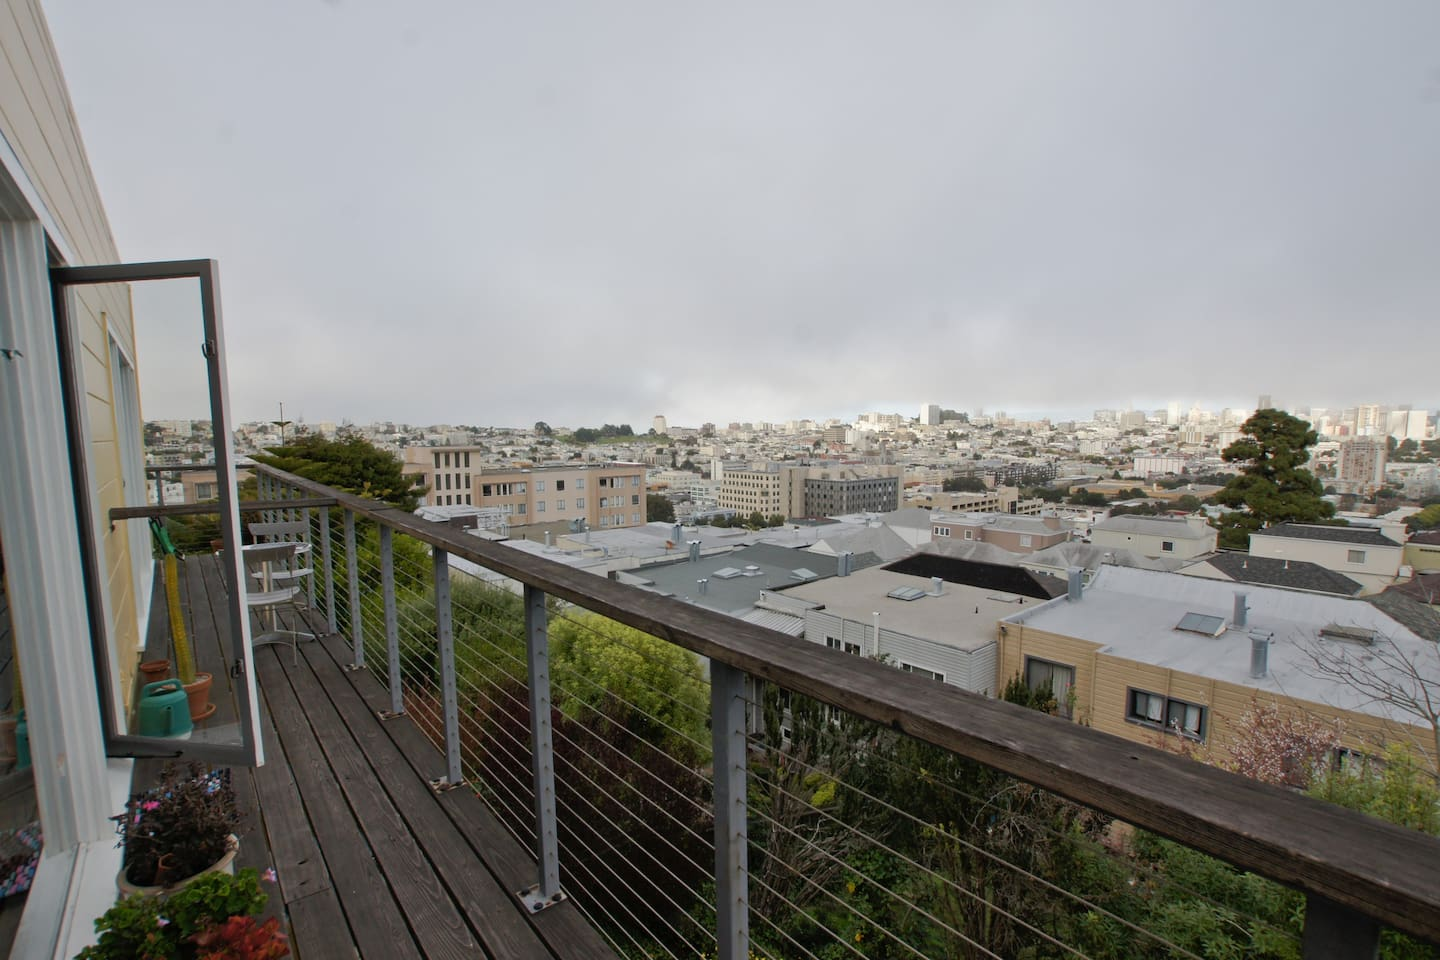 Looking North towards Alcatraz and Pacific Heights, Angel Island and the Fillmore district.